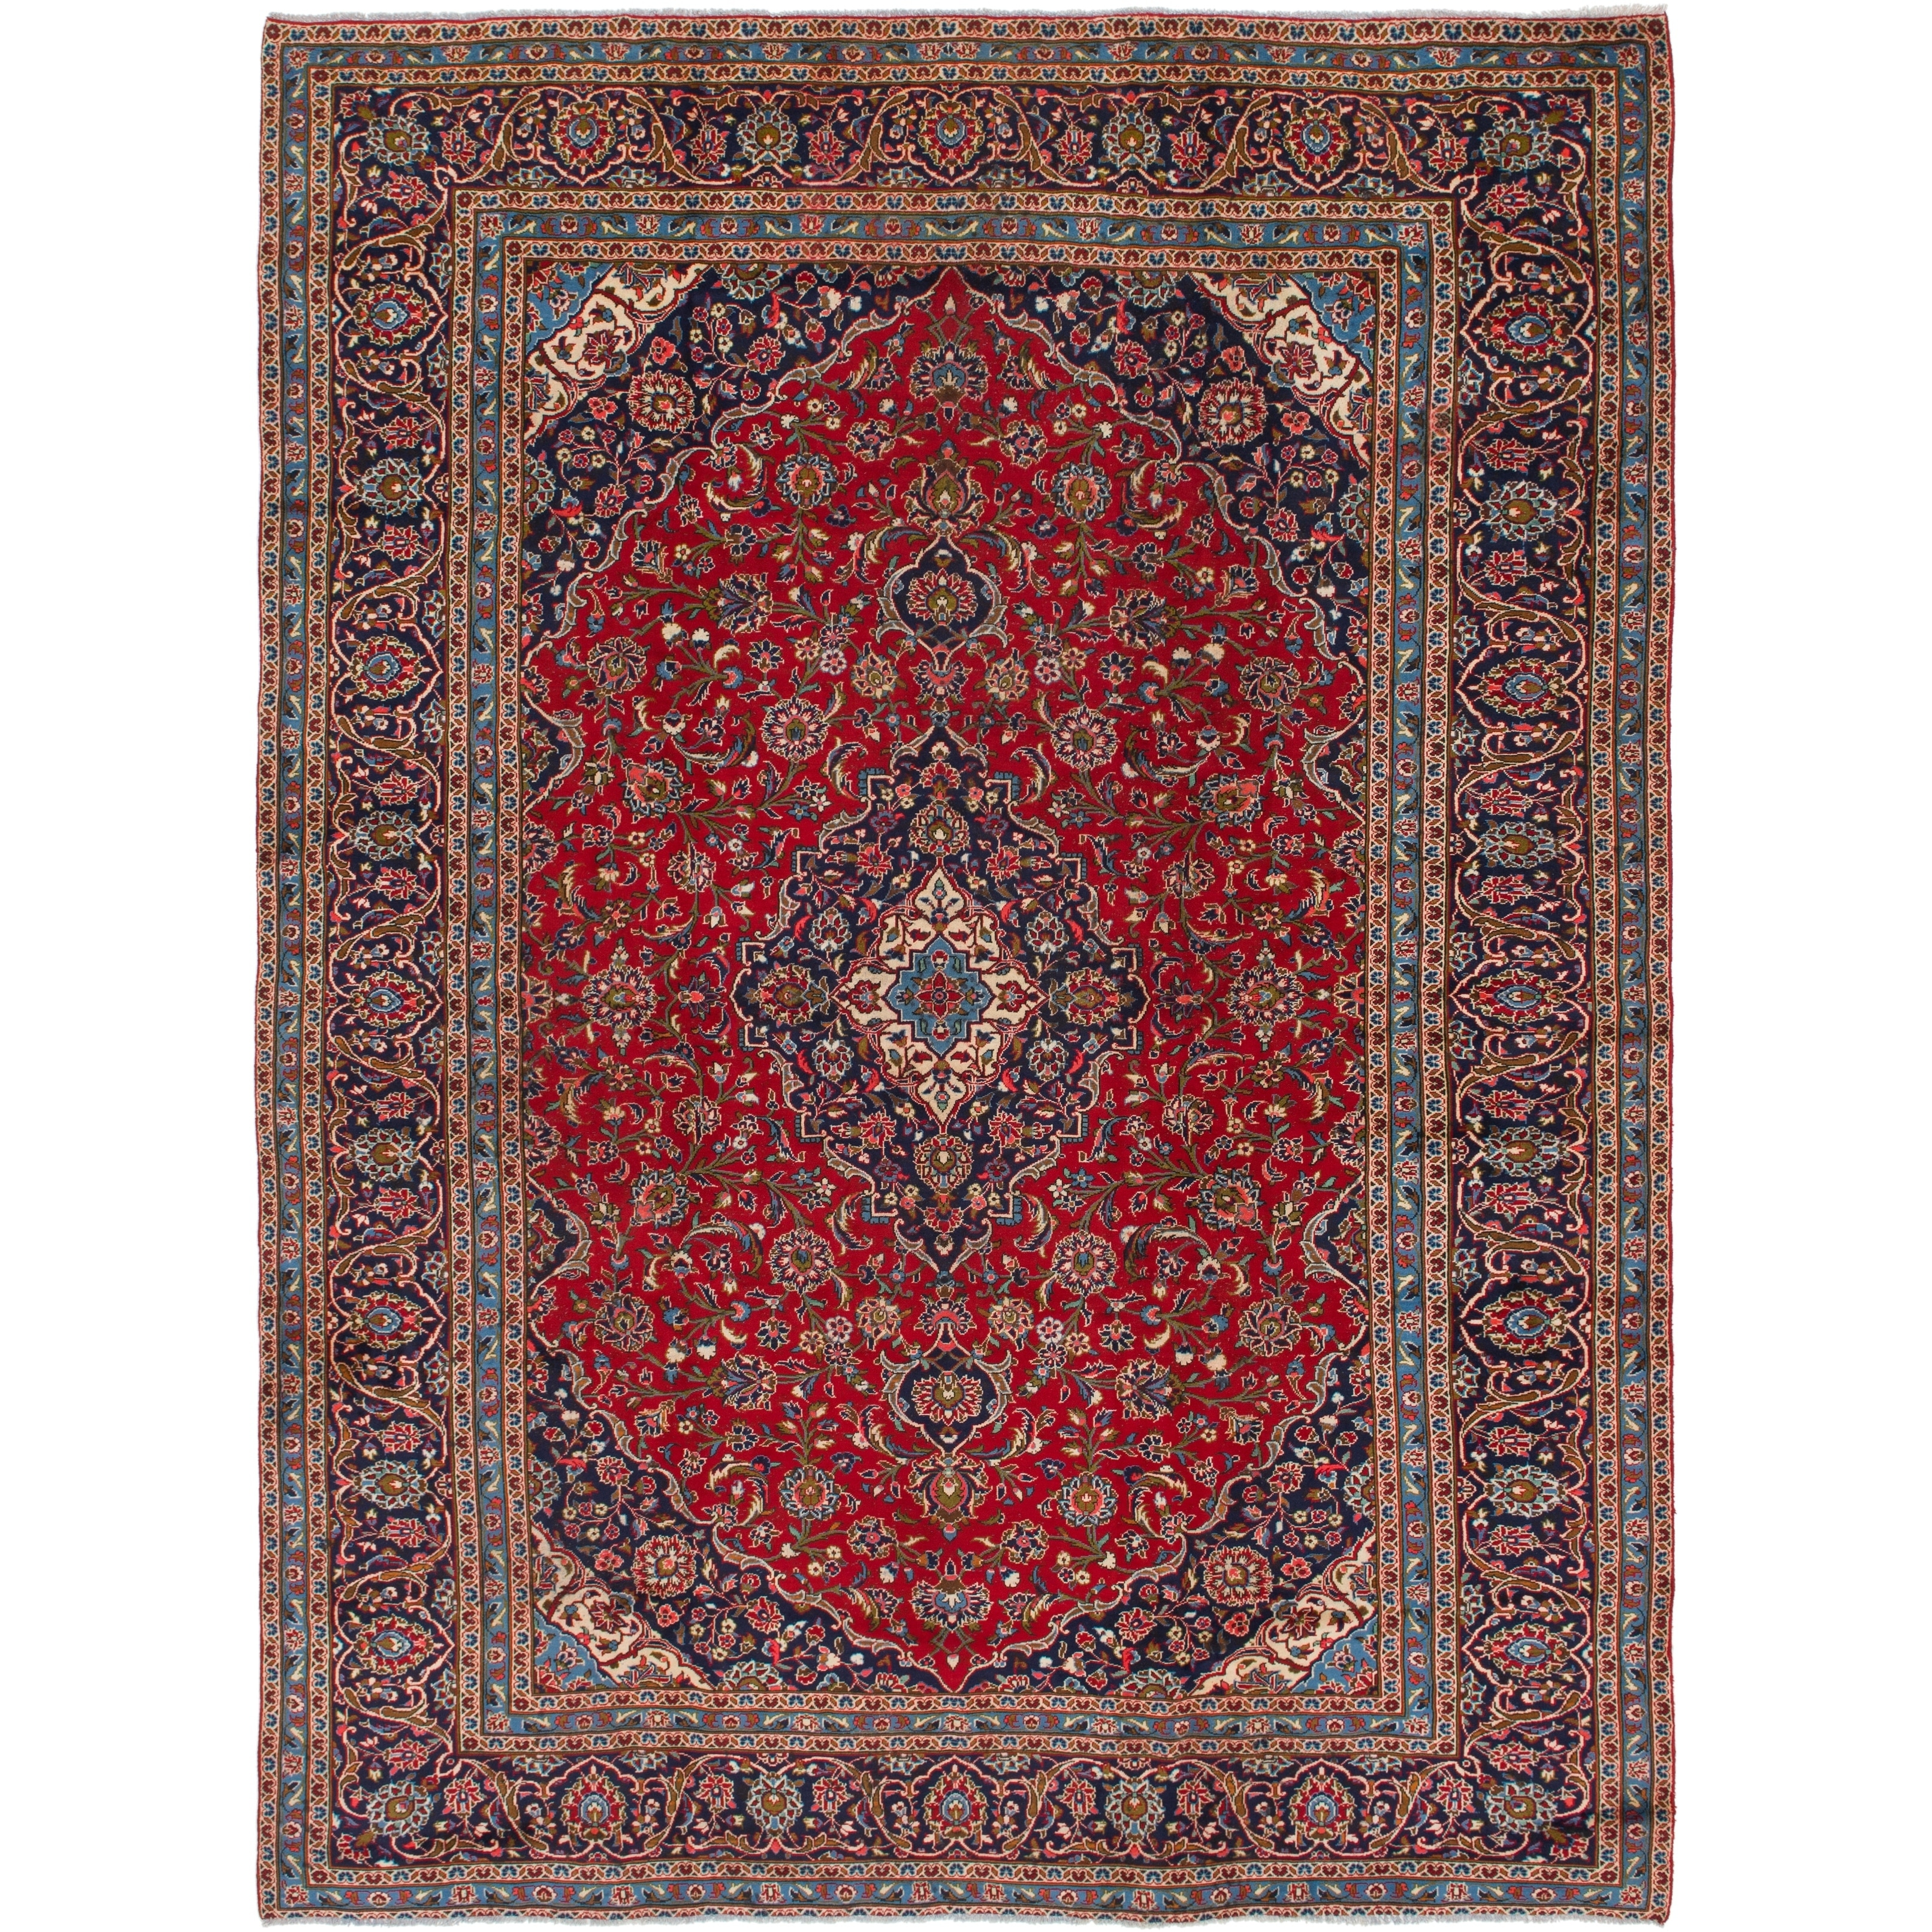 Hand Knotted Kashan Semi Antique Wool Area Rug - 9 7 x 12 7 (Red - 9 7 x 12 7)